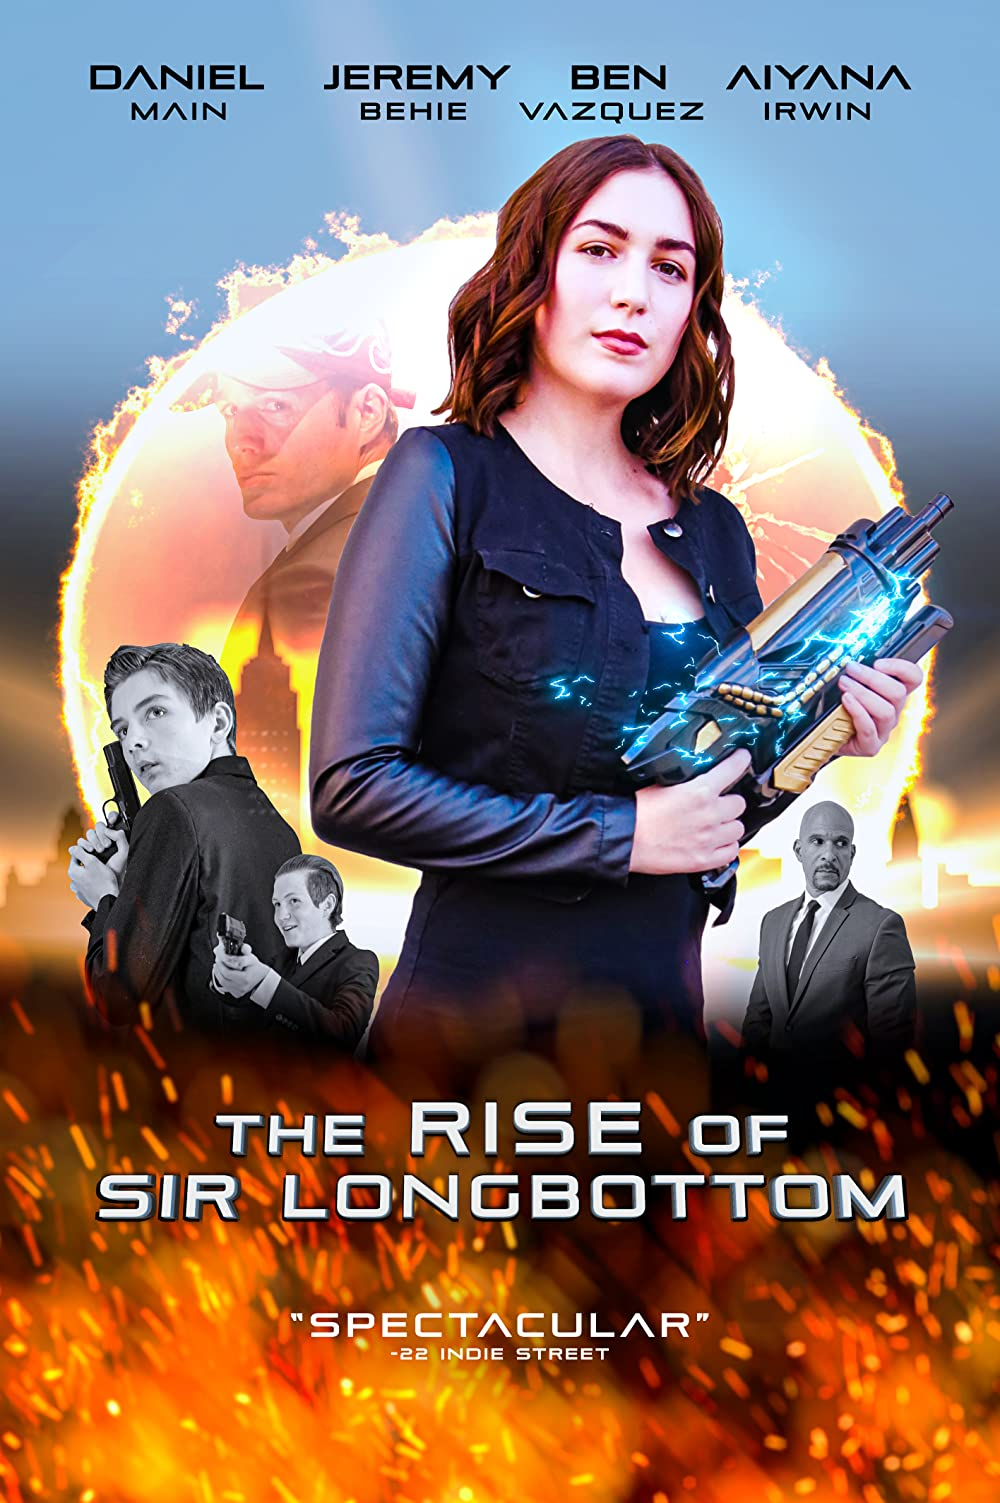 The Rise of Sir Longbottom 2021 English 720p HDRip 800MB Download